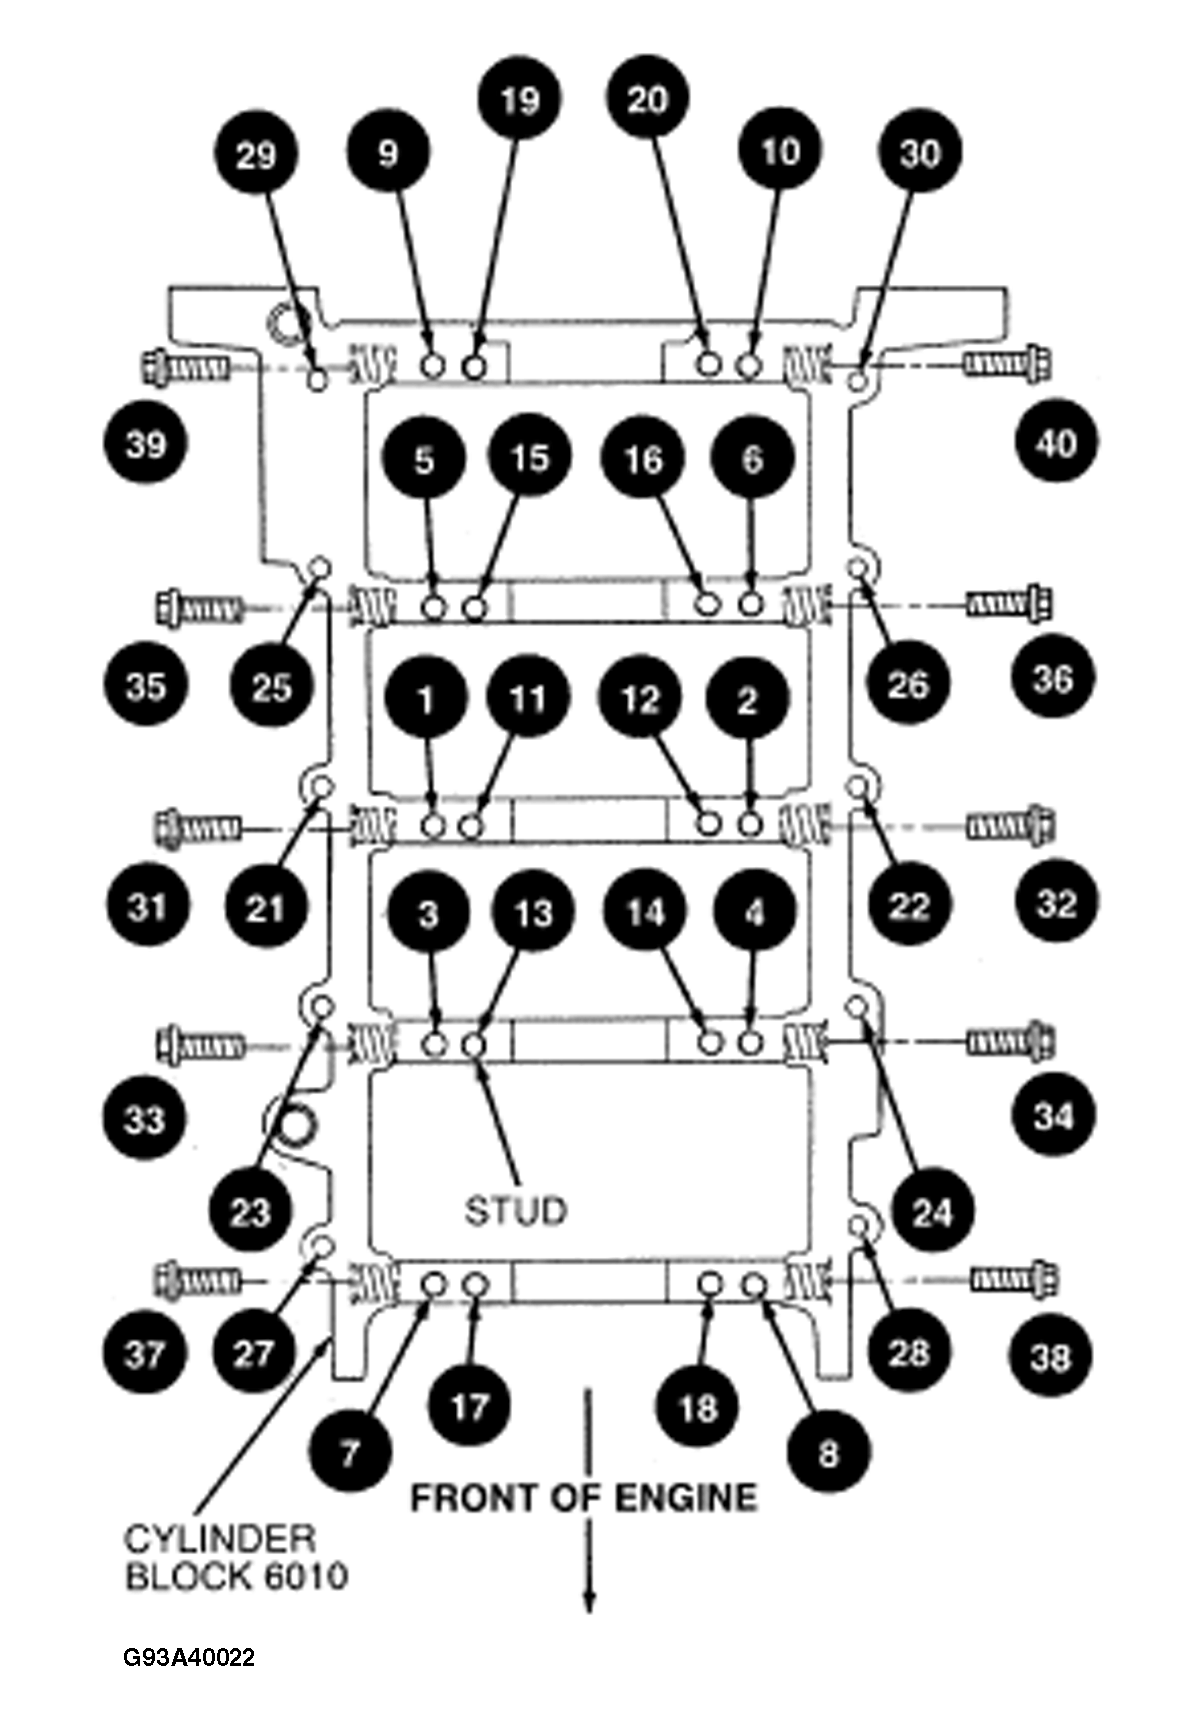 Graphic on Vin Number Engine Code